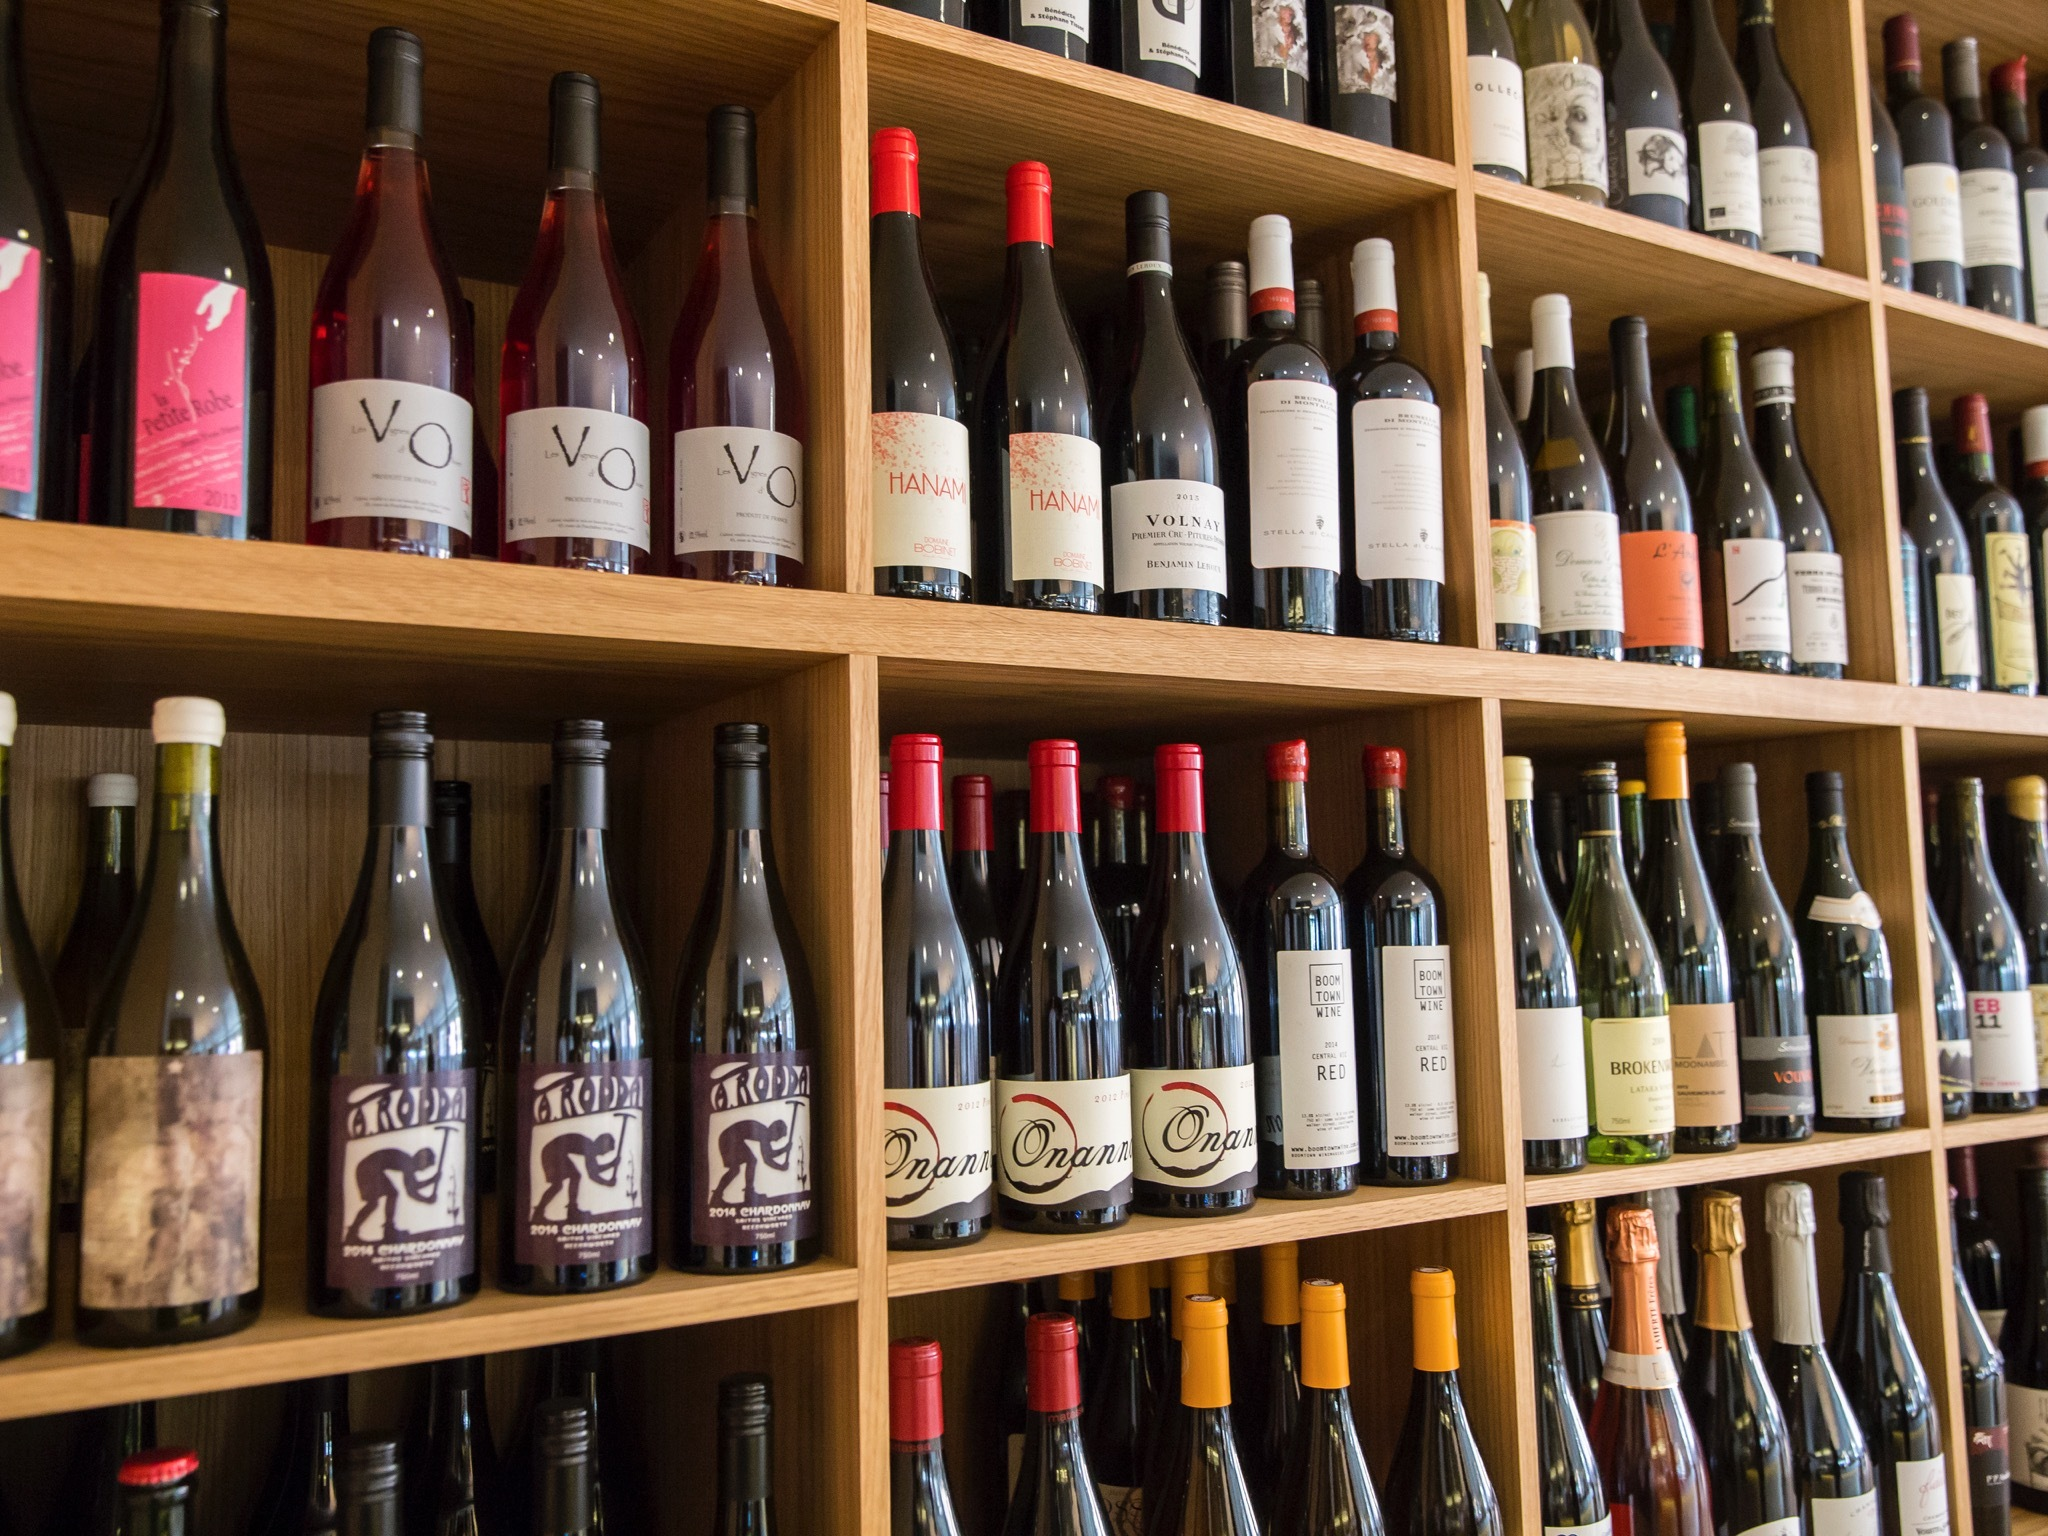 A selection of wines on shelving